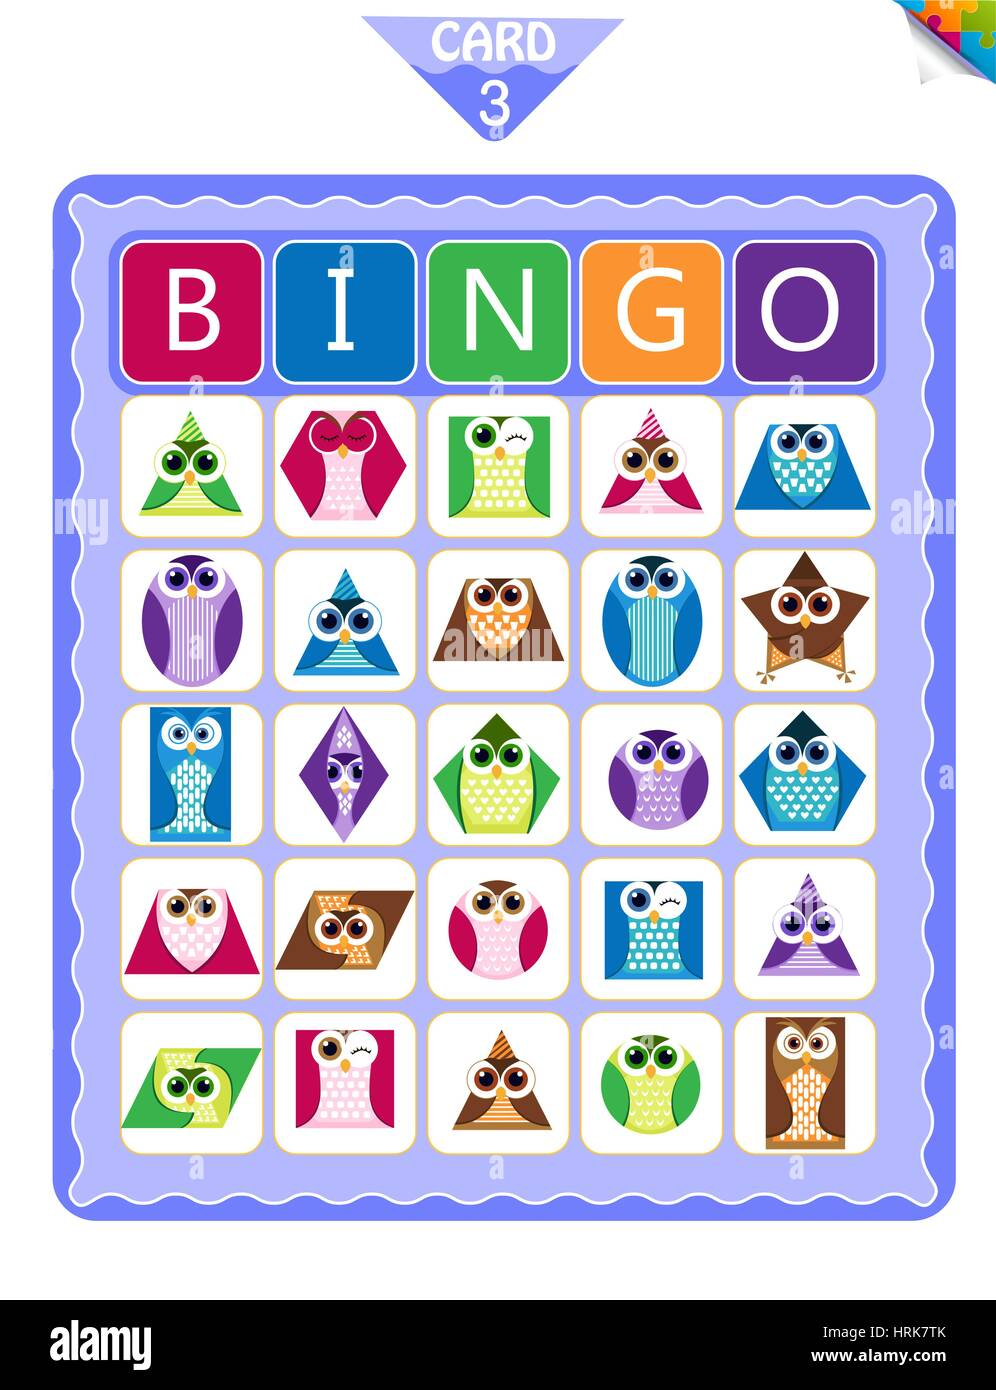 Printable Educational Bingo Game For Preschool Kids With Shapes In